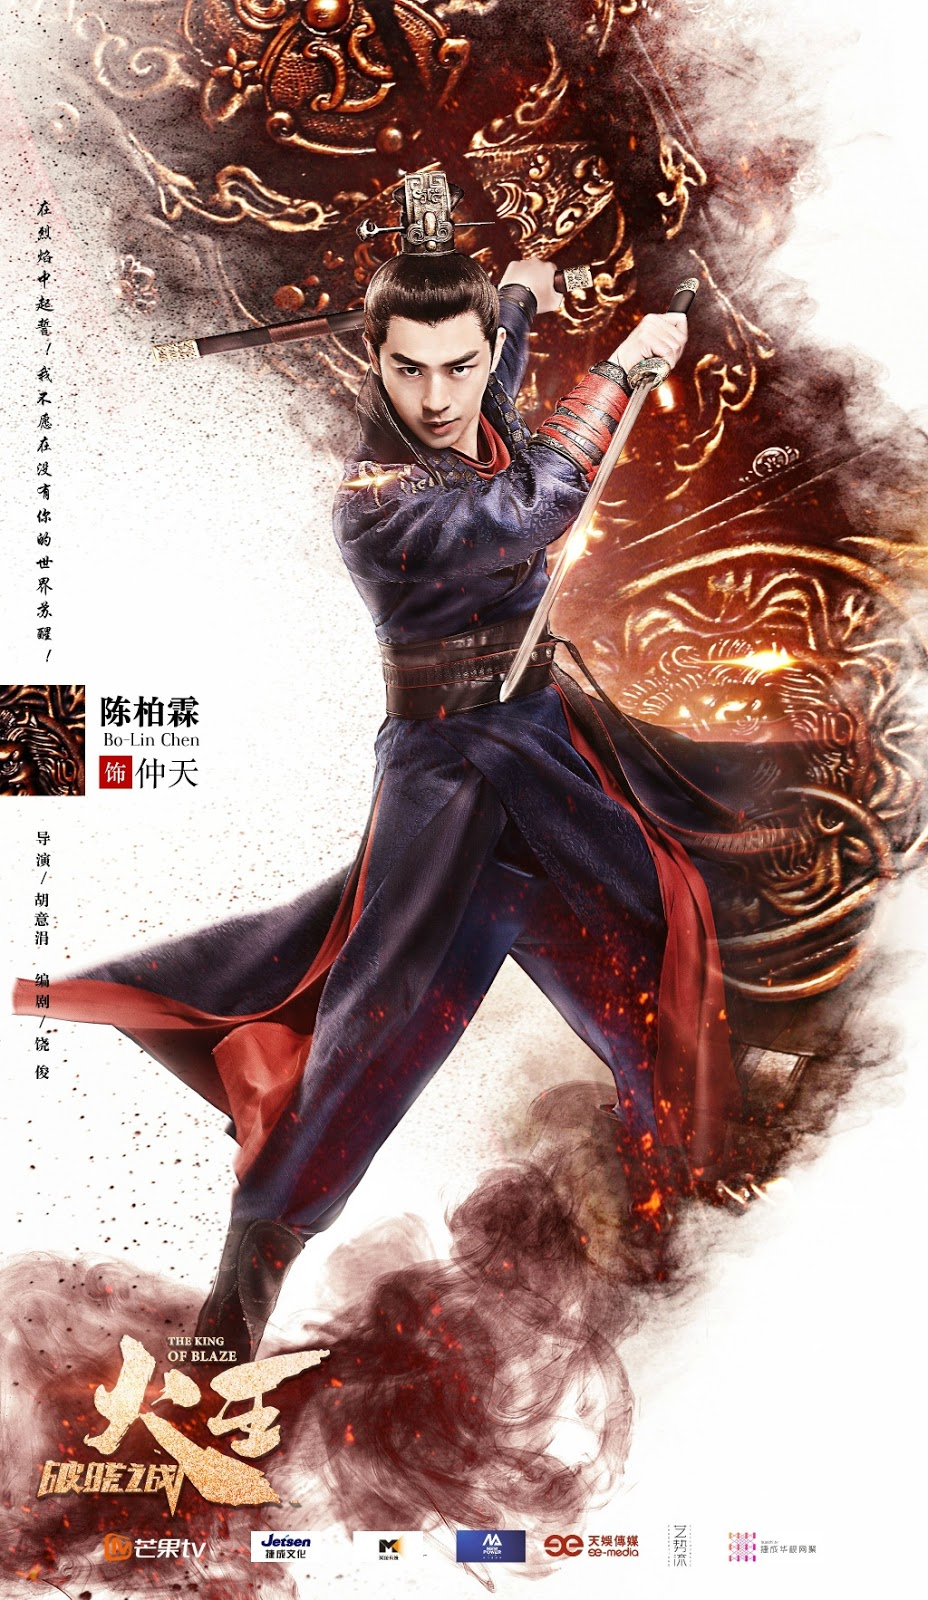 The King of Blaze Chen Bolin